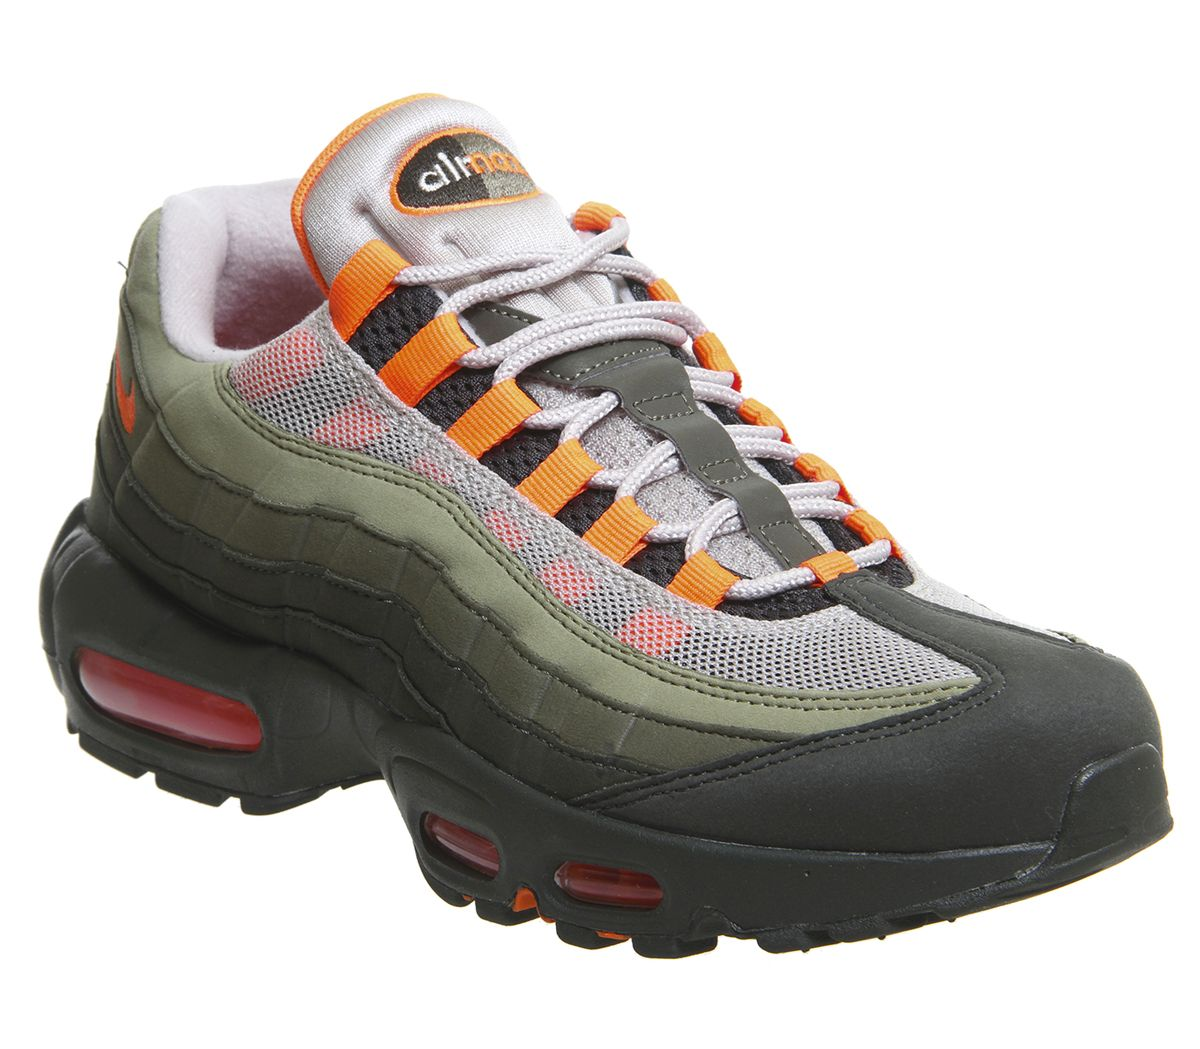 new product 11c82 90ad2 Nike Air Max 95 Trainers String Total Orange Medium Olive Khaki ...